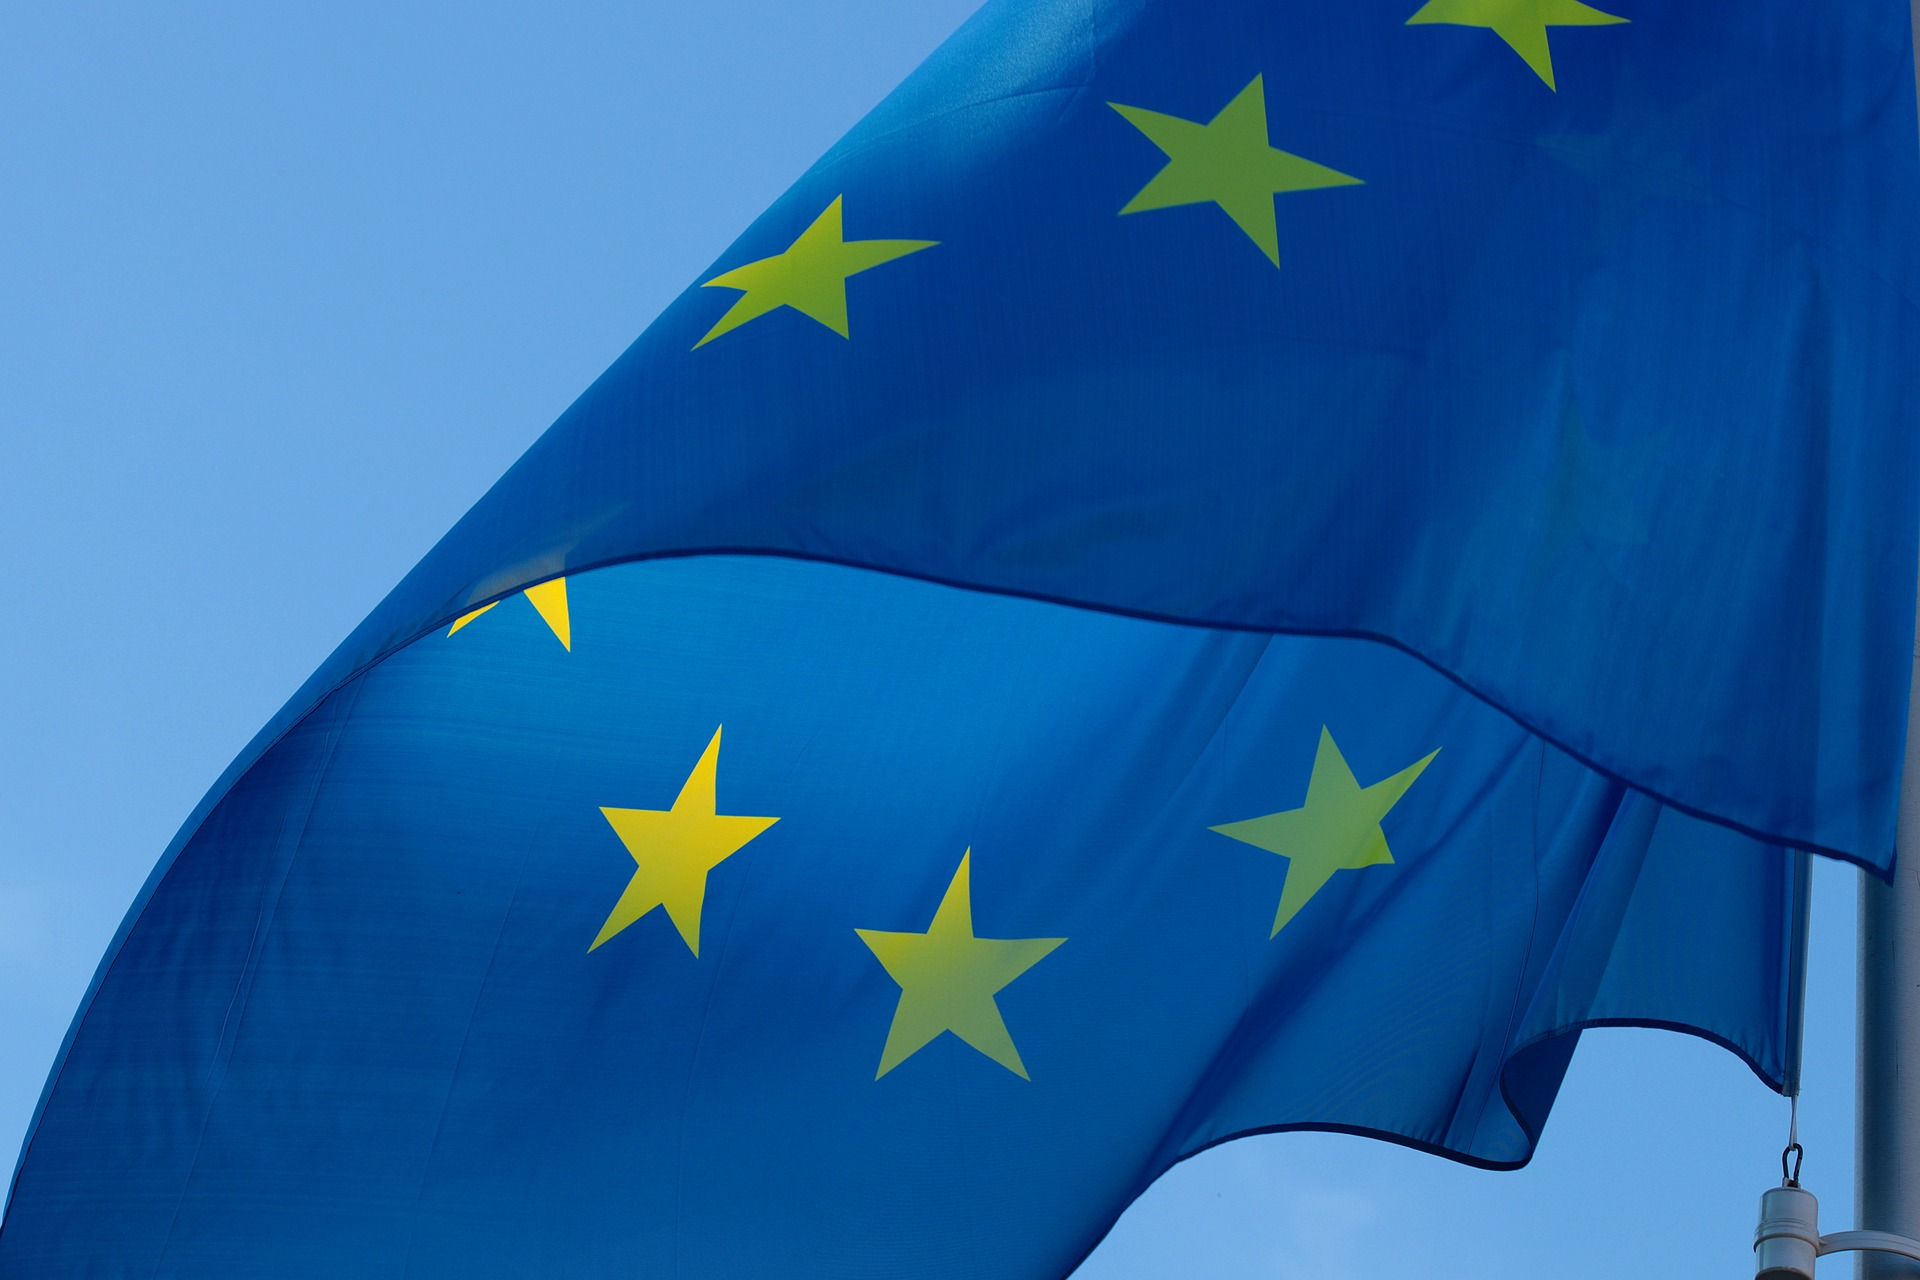 SolarPower Europe: PV capacity additions in the EU28 could double by 2020 (Credit: Pixel2013 / Pixabay)